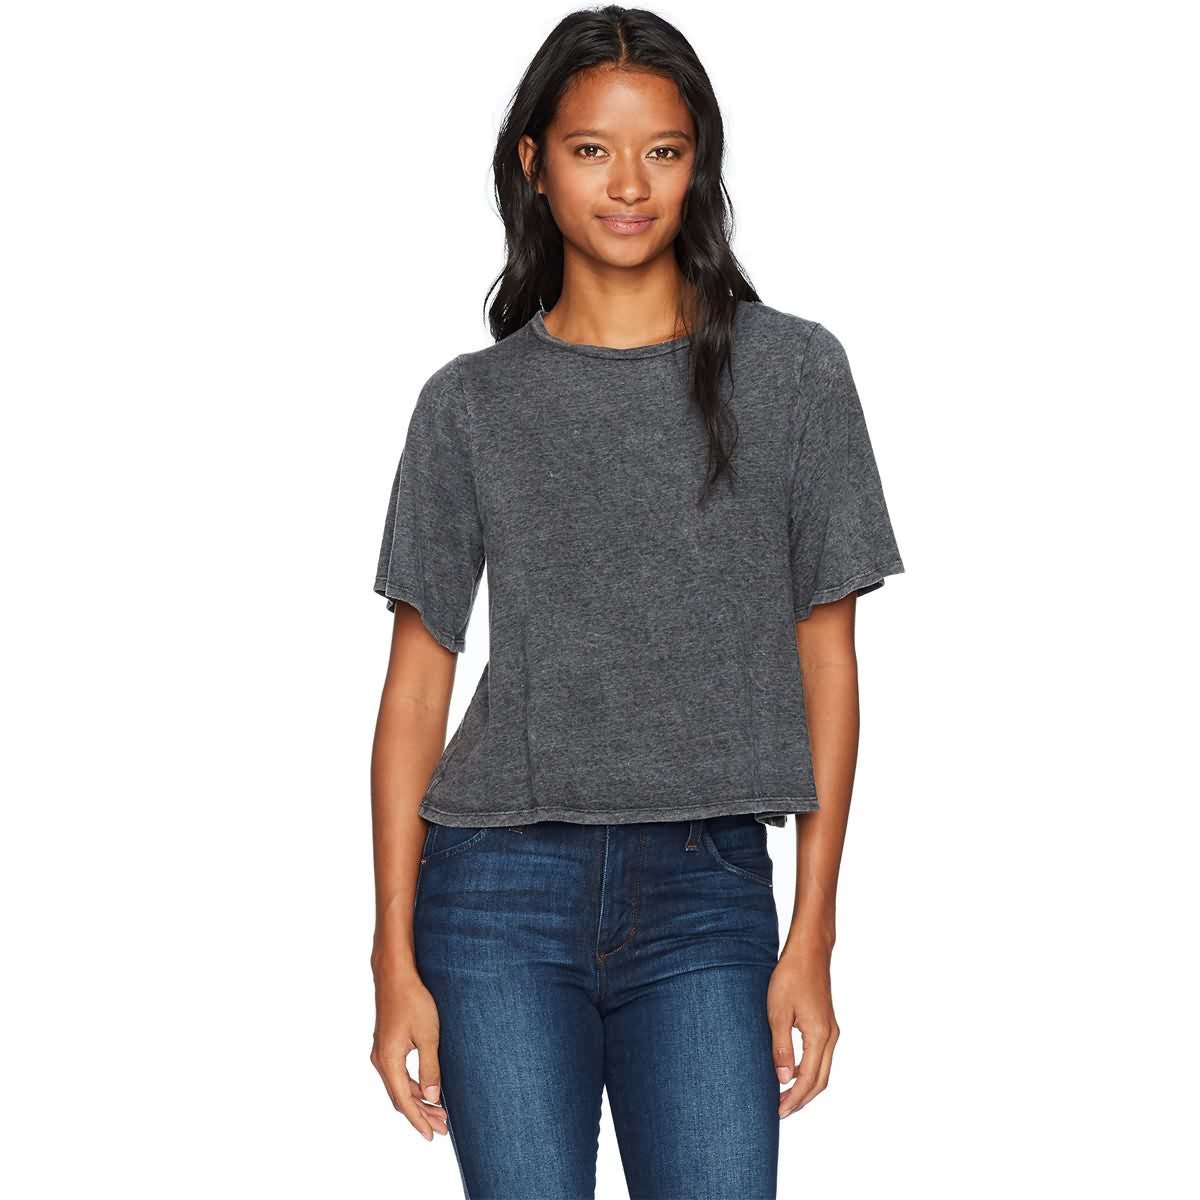 Billabong Wound Up Women's Top Shirts-J903LWOU